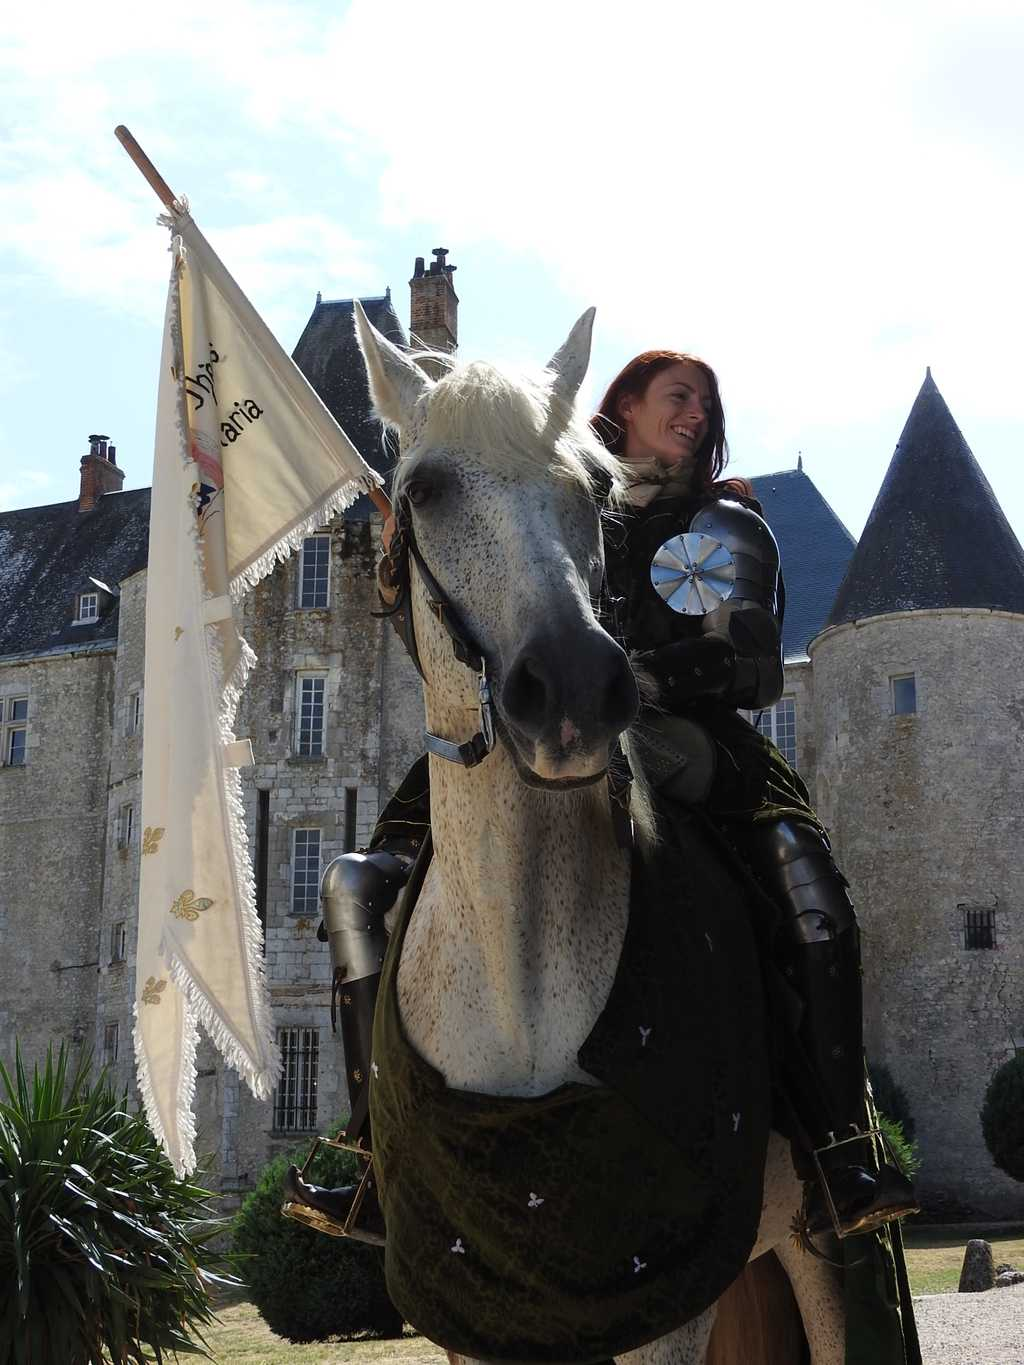 Joan of Arc's soldiers